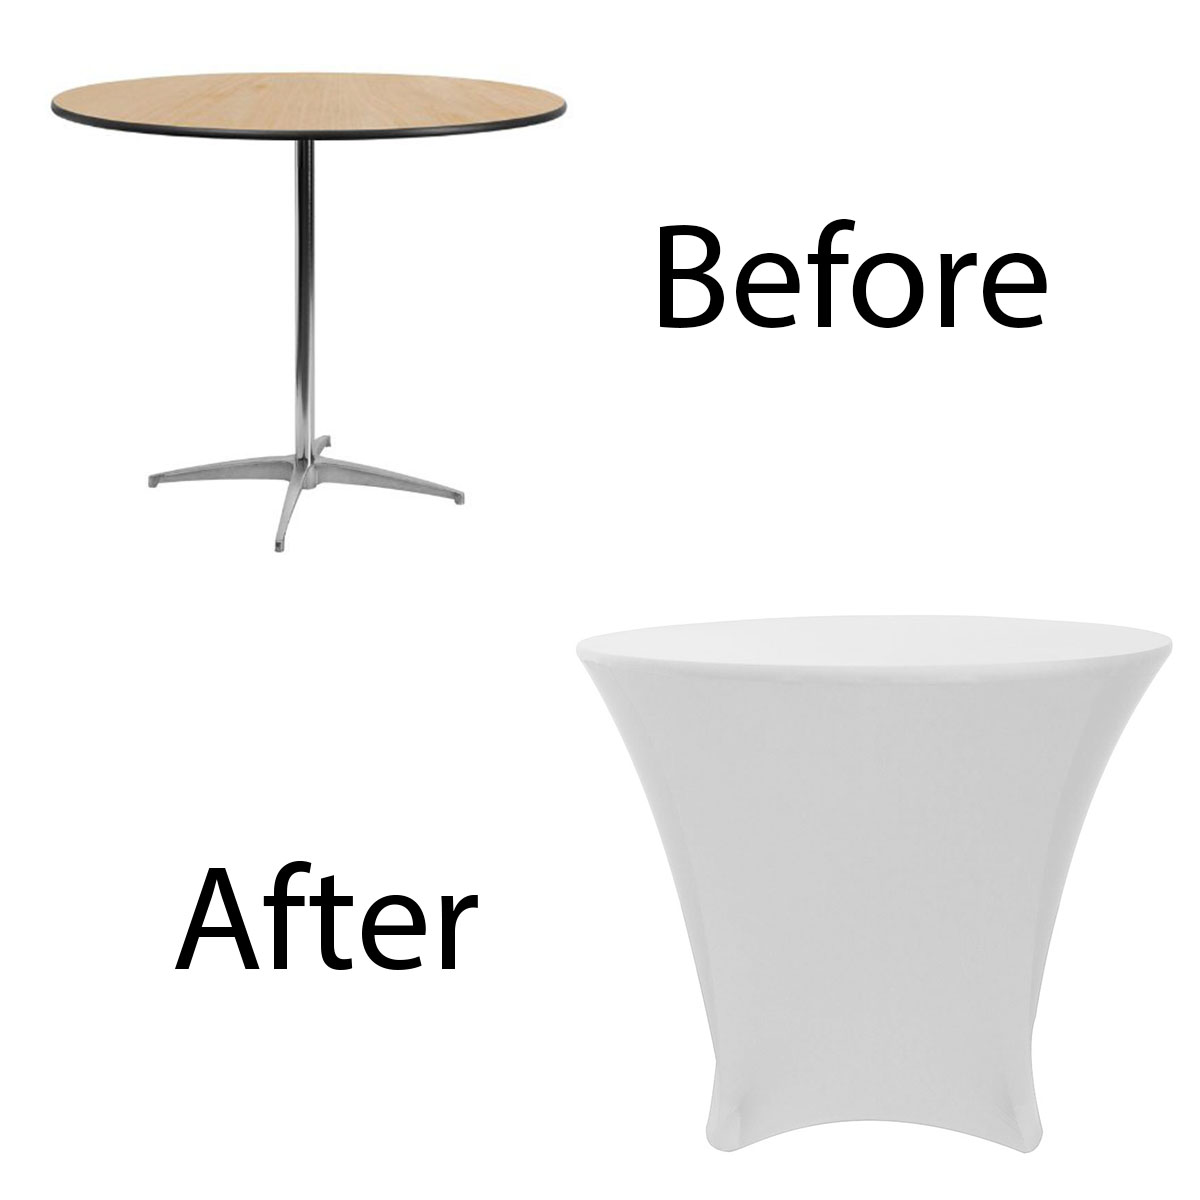 36-30-inch-lowboy-cocktail-spandex-table-covers-white-before-after.jpg